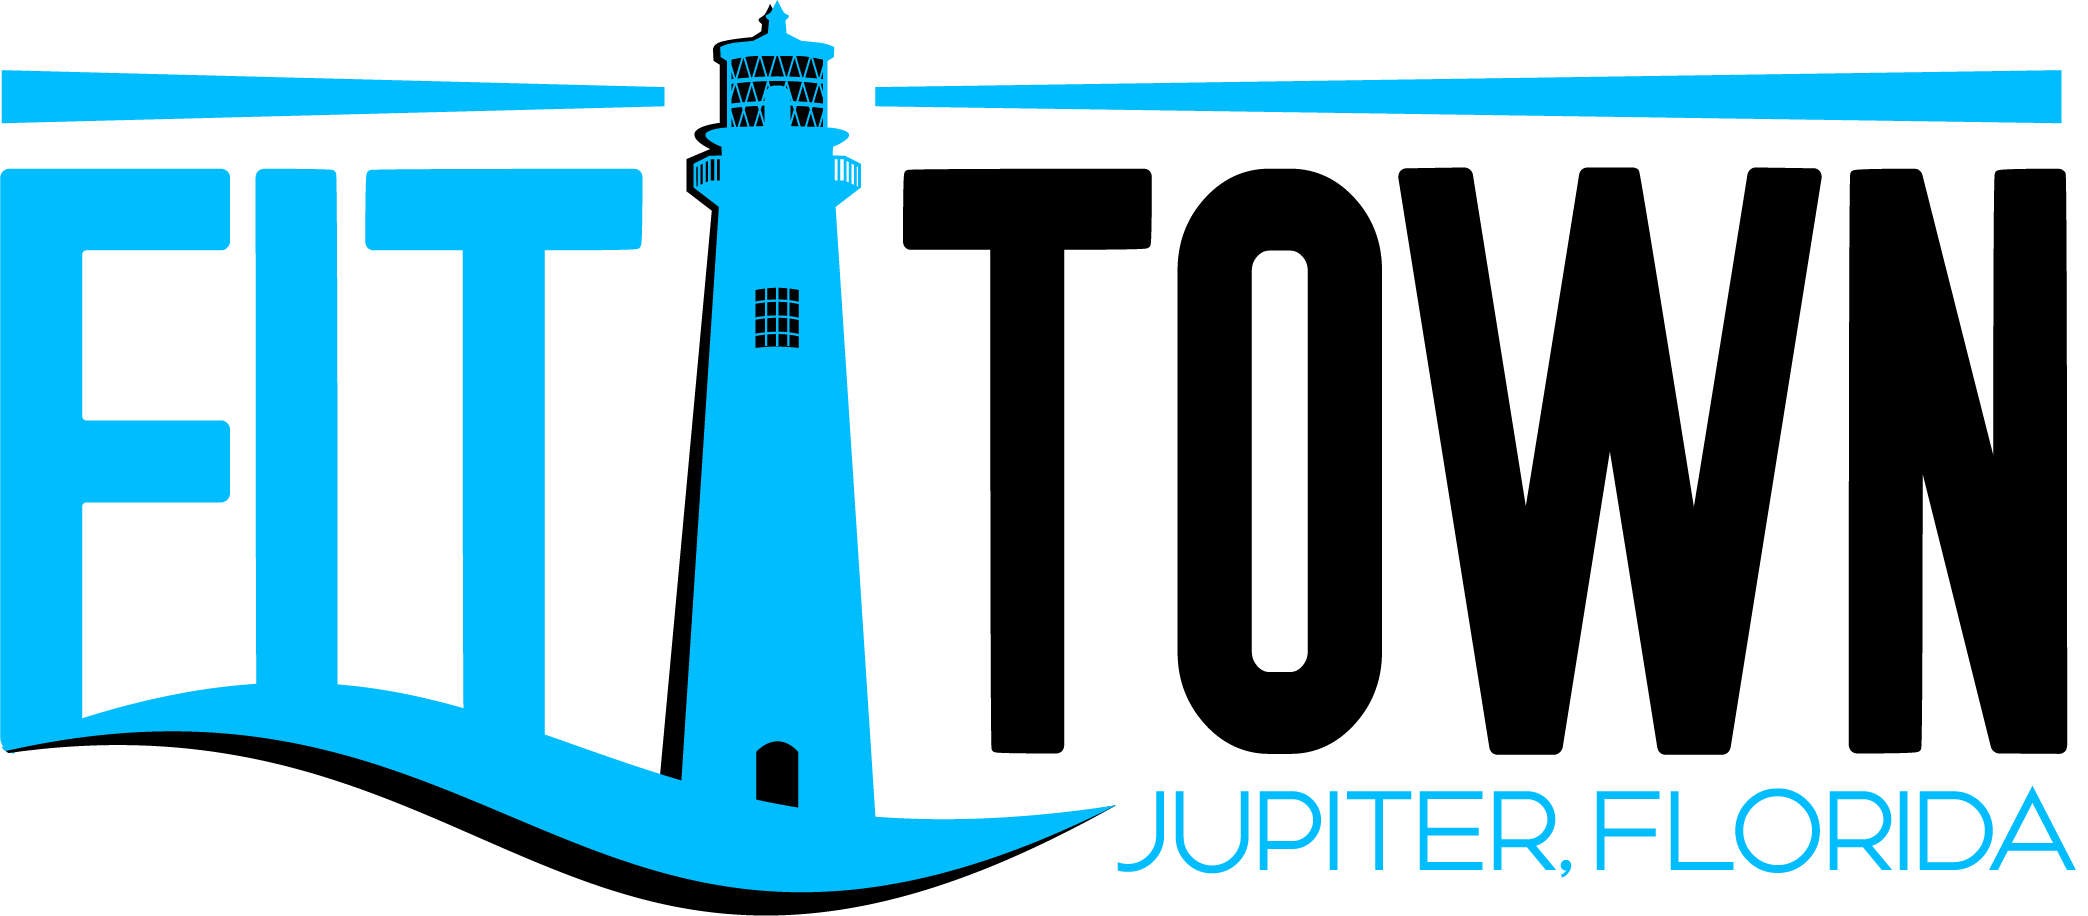 FitTown Jupiter logo